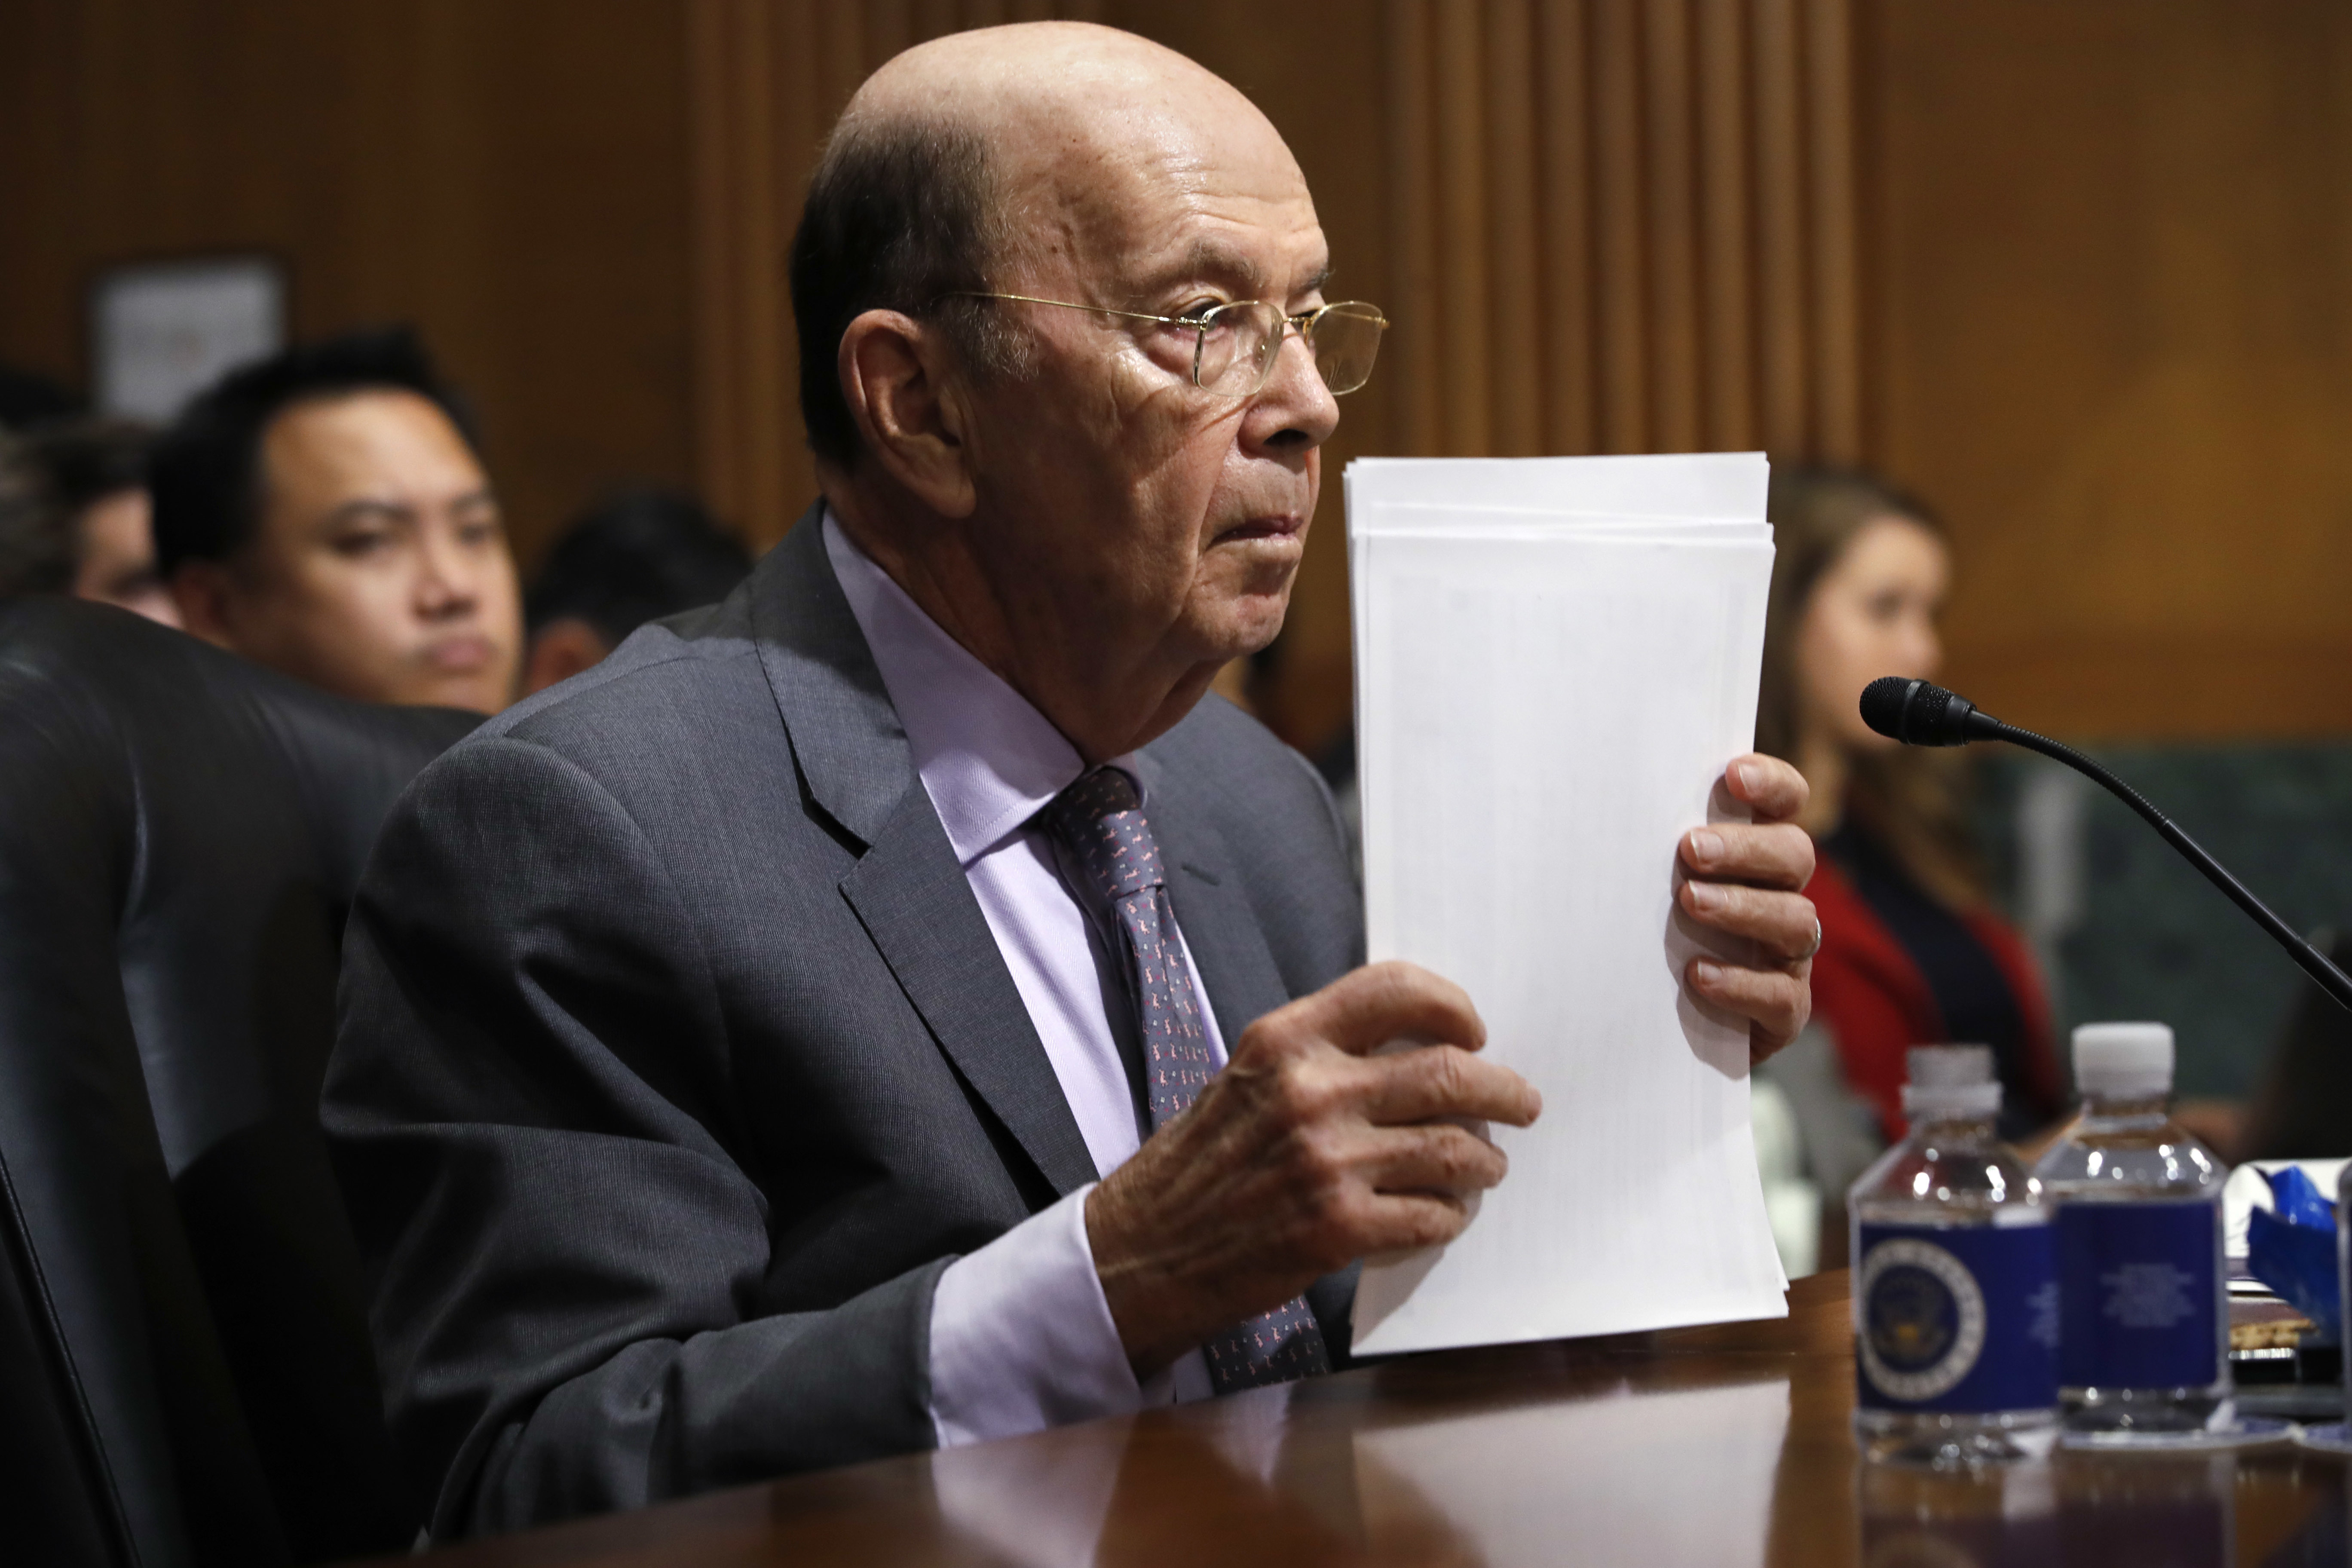 Secretary of Commerce Wilbur Ross straightens his papers during a Senate Finance Committee hearing on tariffs, on Capitol Hill, June 20, 2018 in Washington.